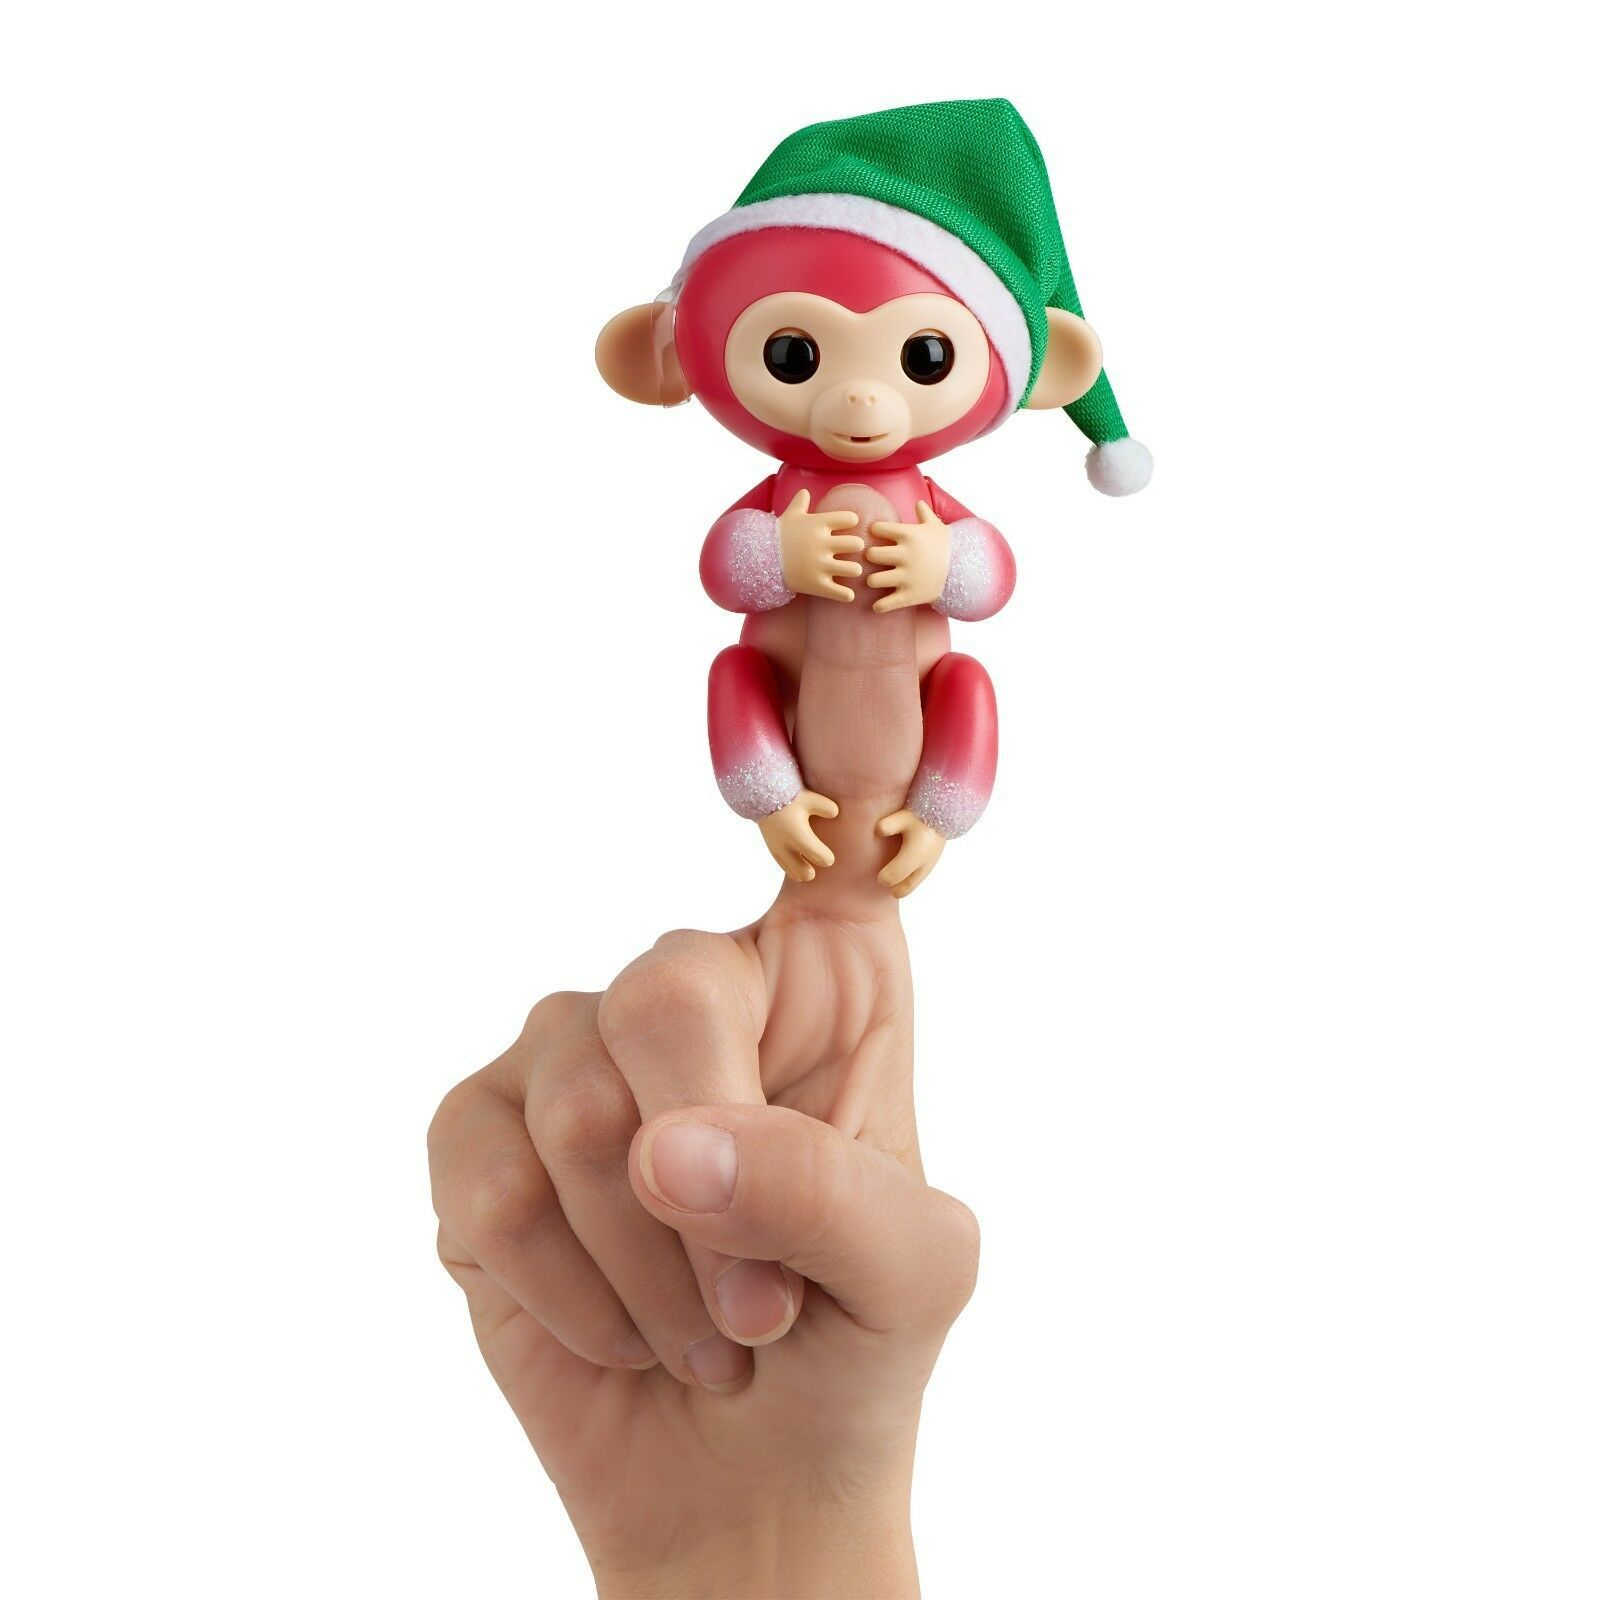 Wow Wee Fingerlings Interactive Baby Monkeys 2-Pack Mini Holly (Green), Jolly (R